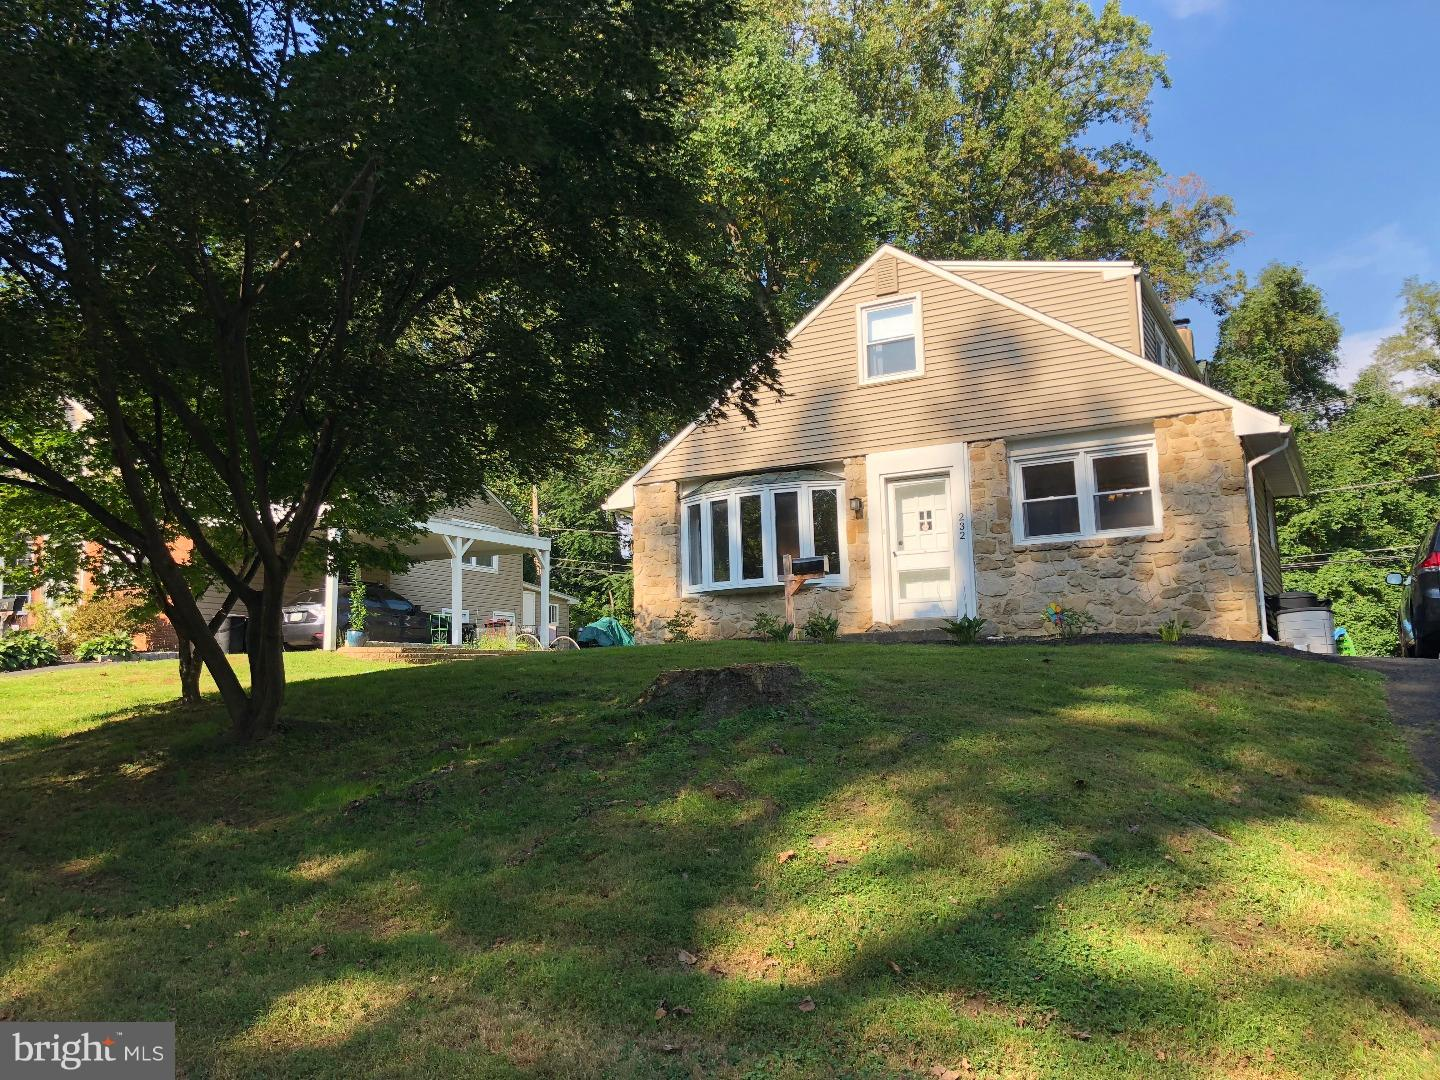 232 COWBELL ROAD, WILLOW GROVE, PA 19090